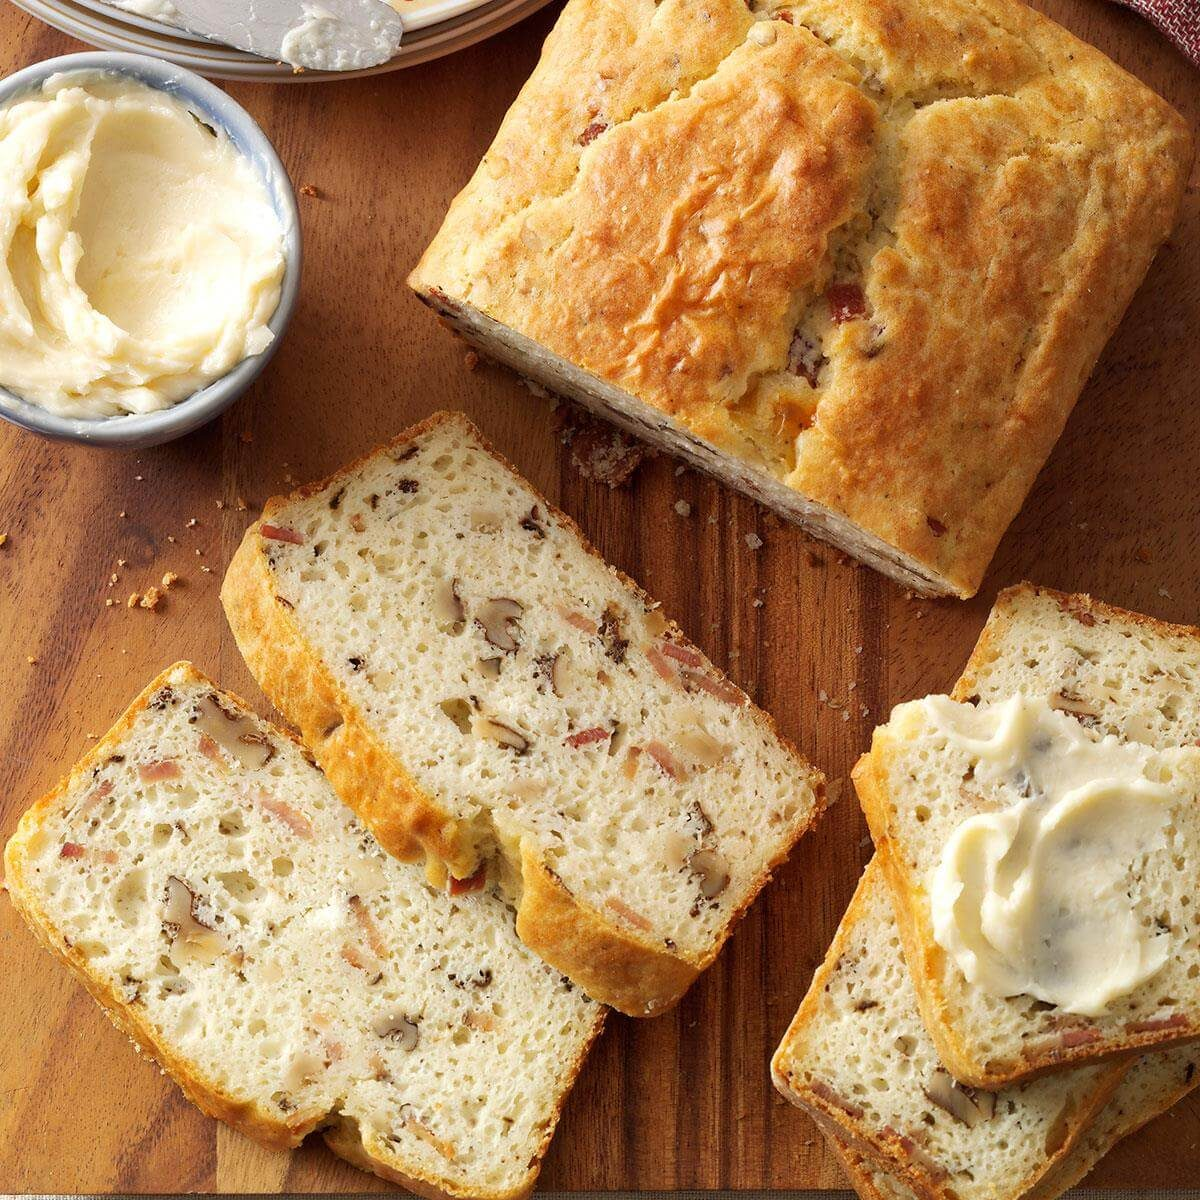 Bacon walnut bread with honey butter